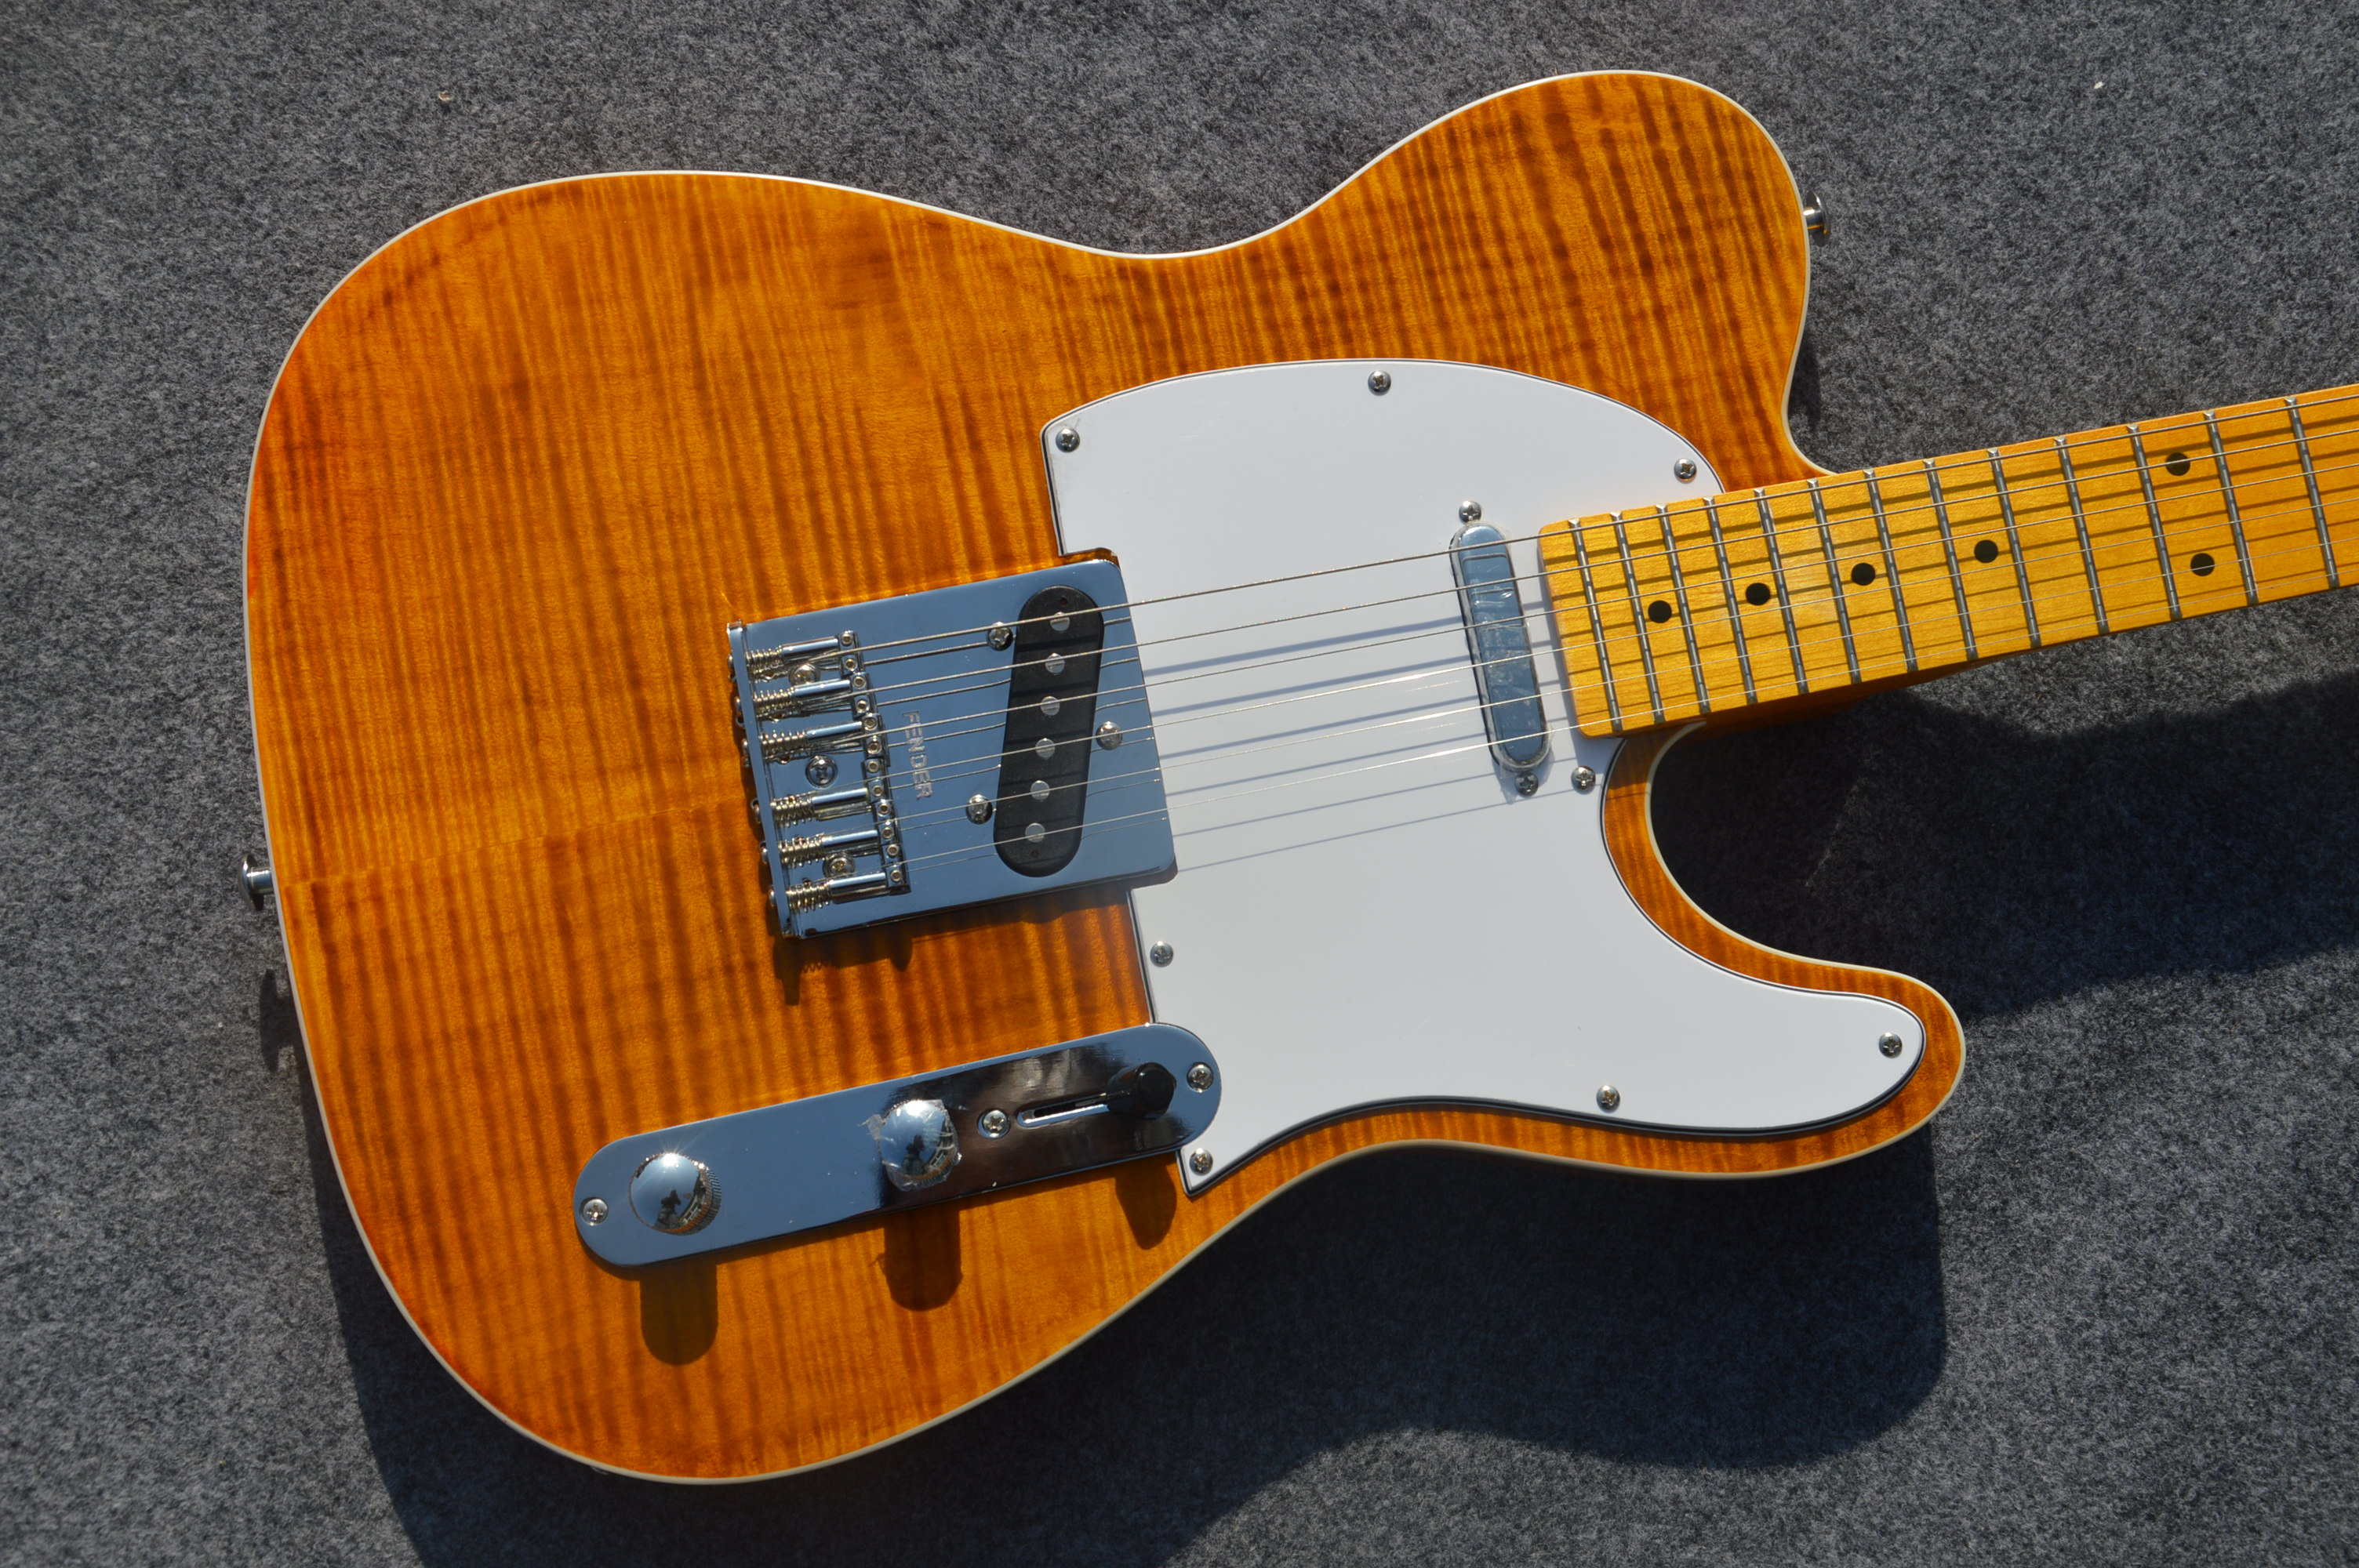 Manufacturers custom shop 2019 new TL electric guitar MAPLE fingerboard yellow wood 6 string electric guitar free shippingManufacturers custom shop 2019 new TL electric guitar MAPLE fingerboard yellow wood 6 string electric guitar free shipping